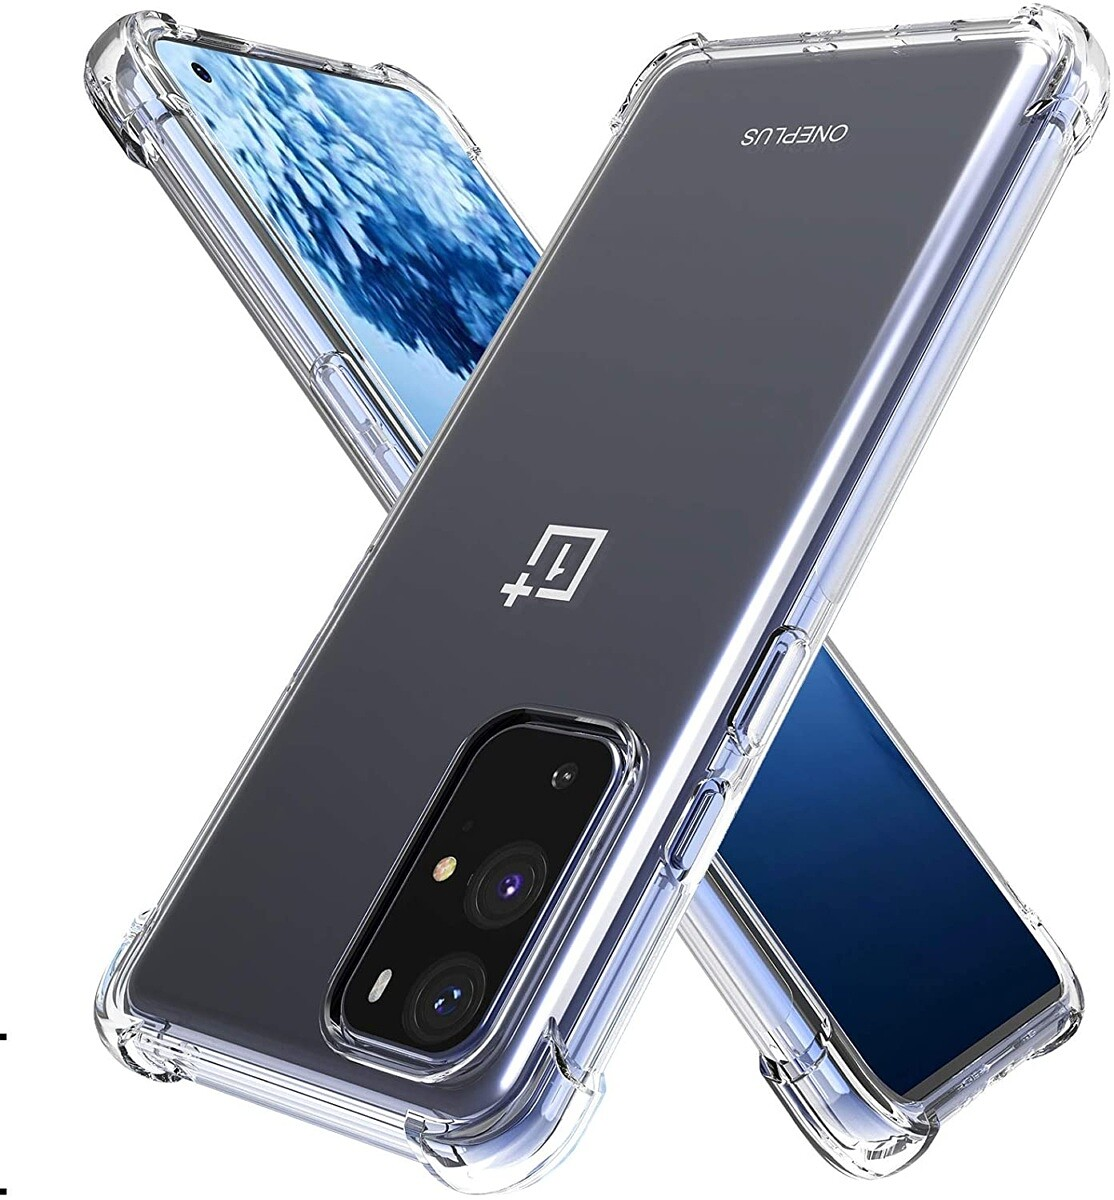 The best OnePlus 9 clear cases of April 2021: Spigen, Poetic, and more!